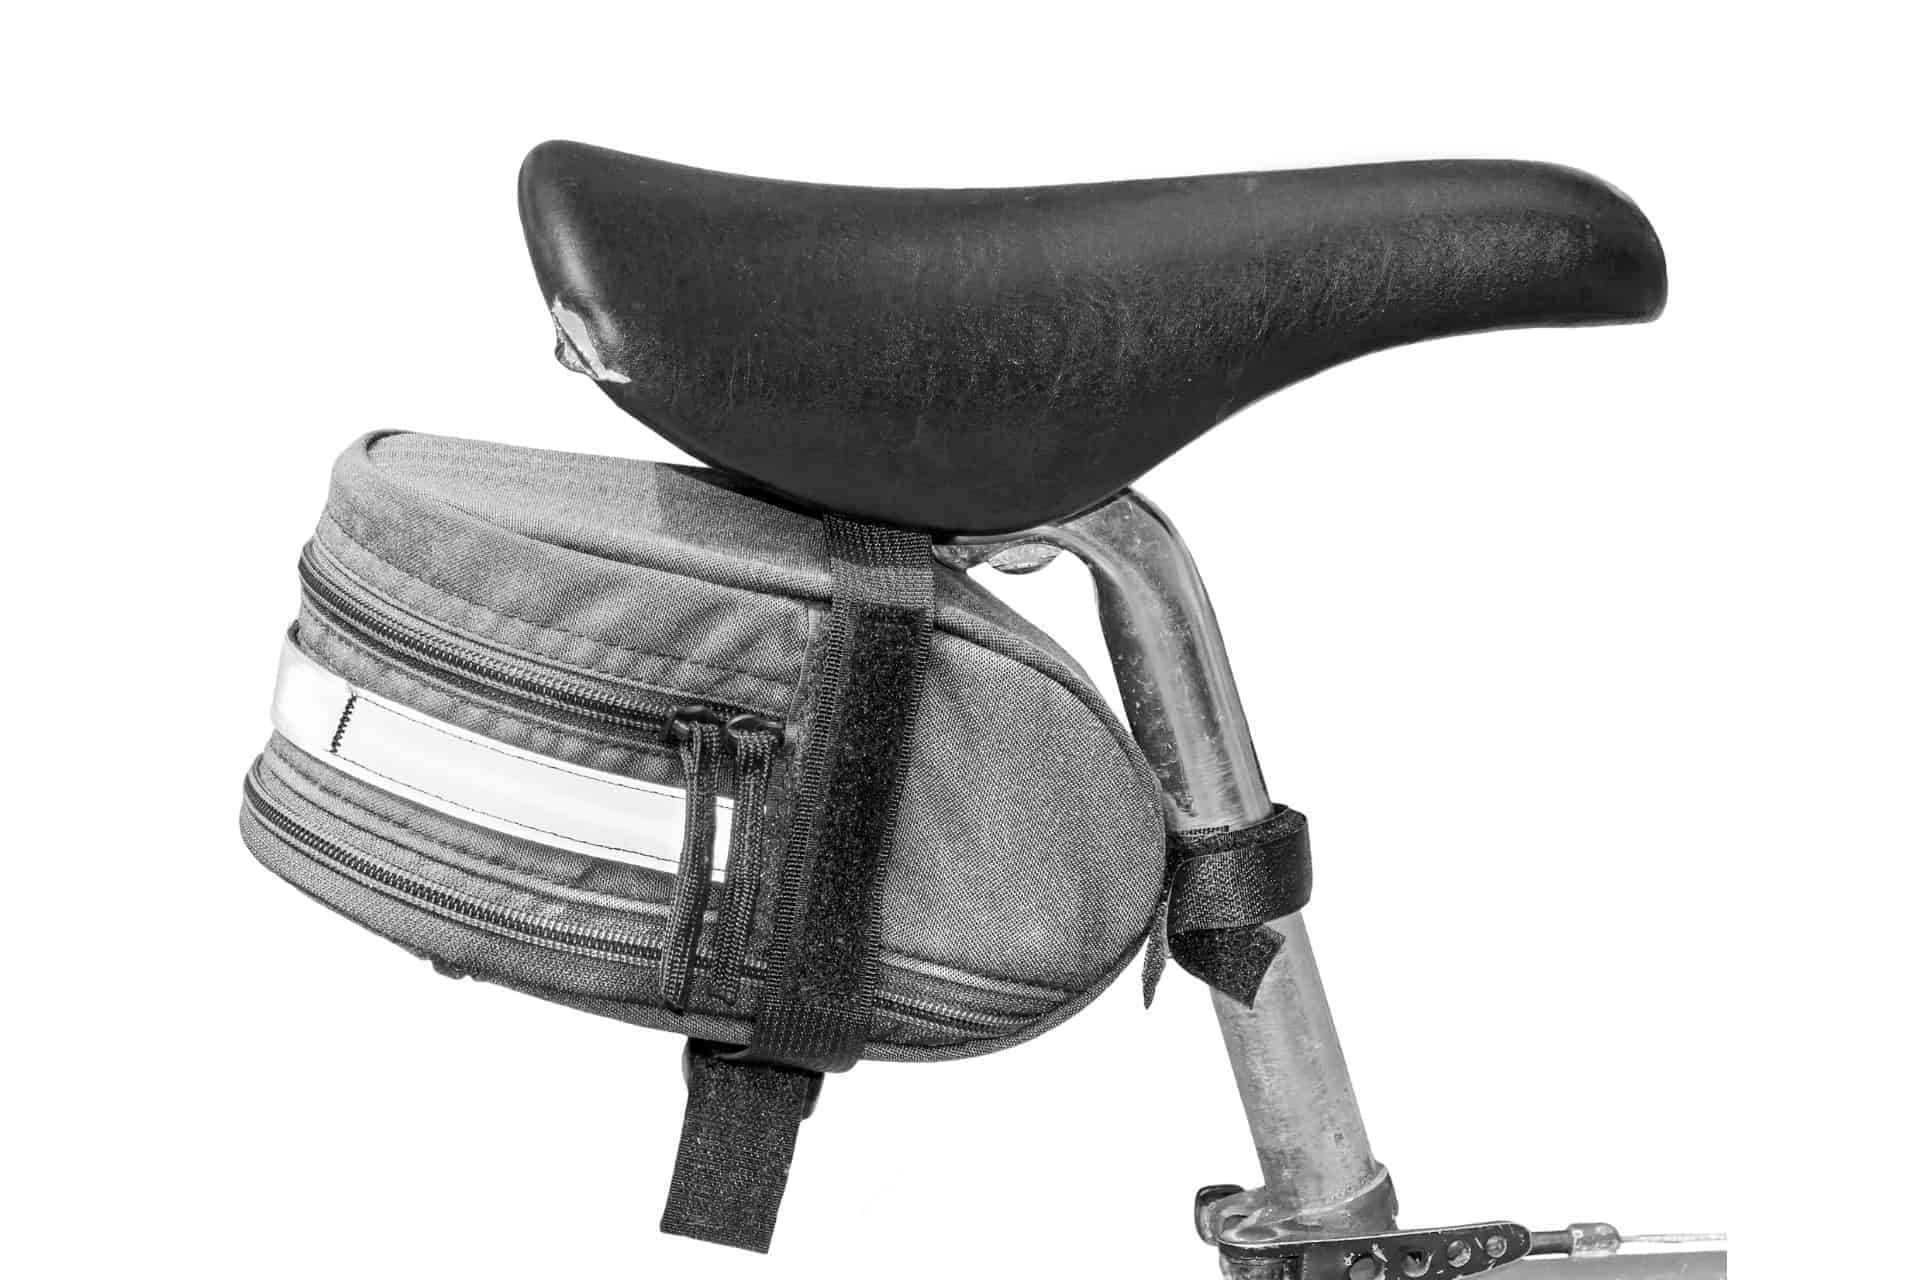 This article will help you select the best cycling saddle bag